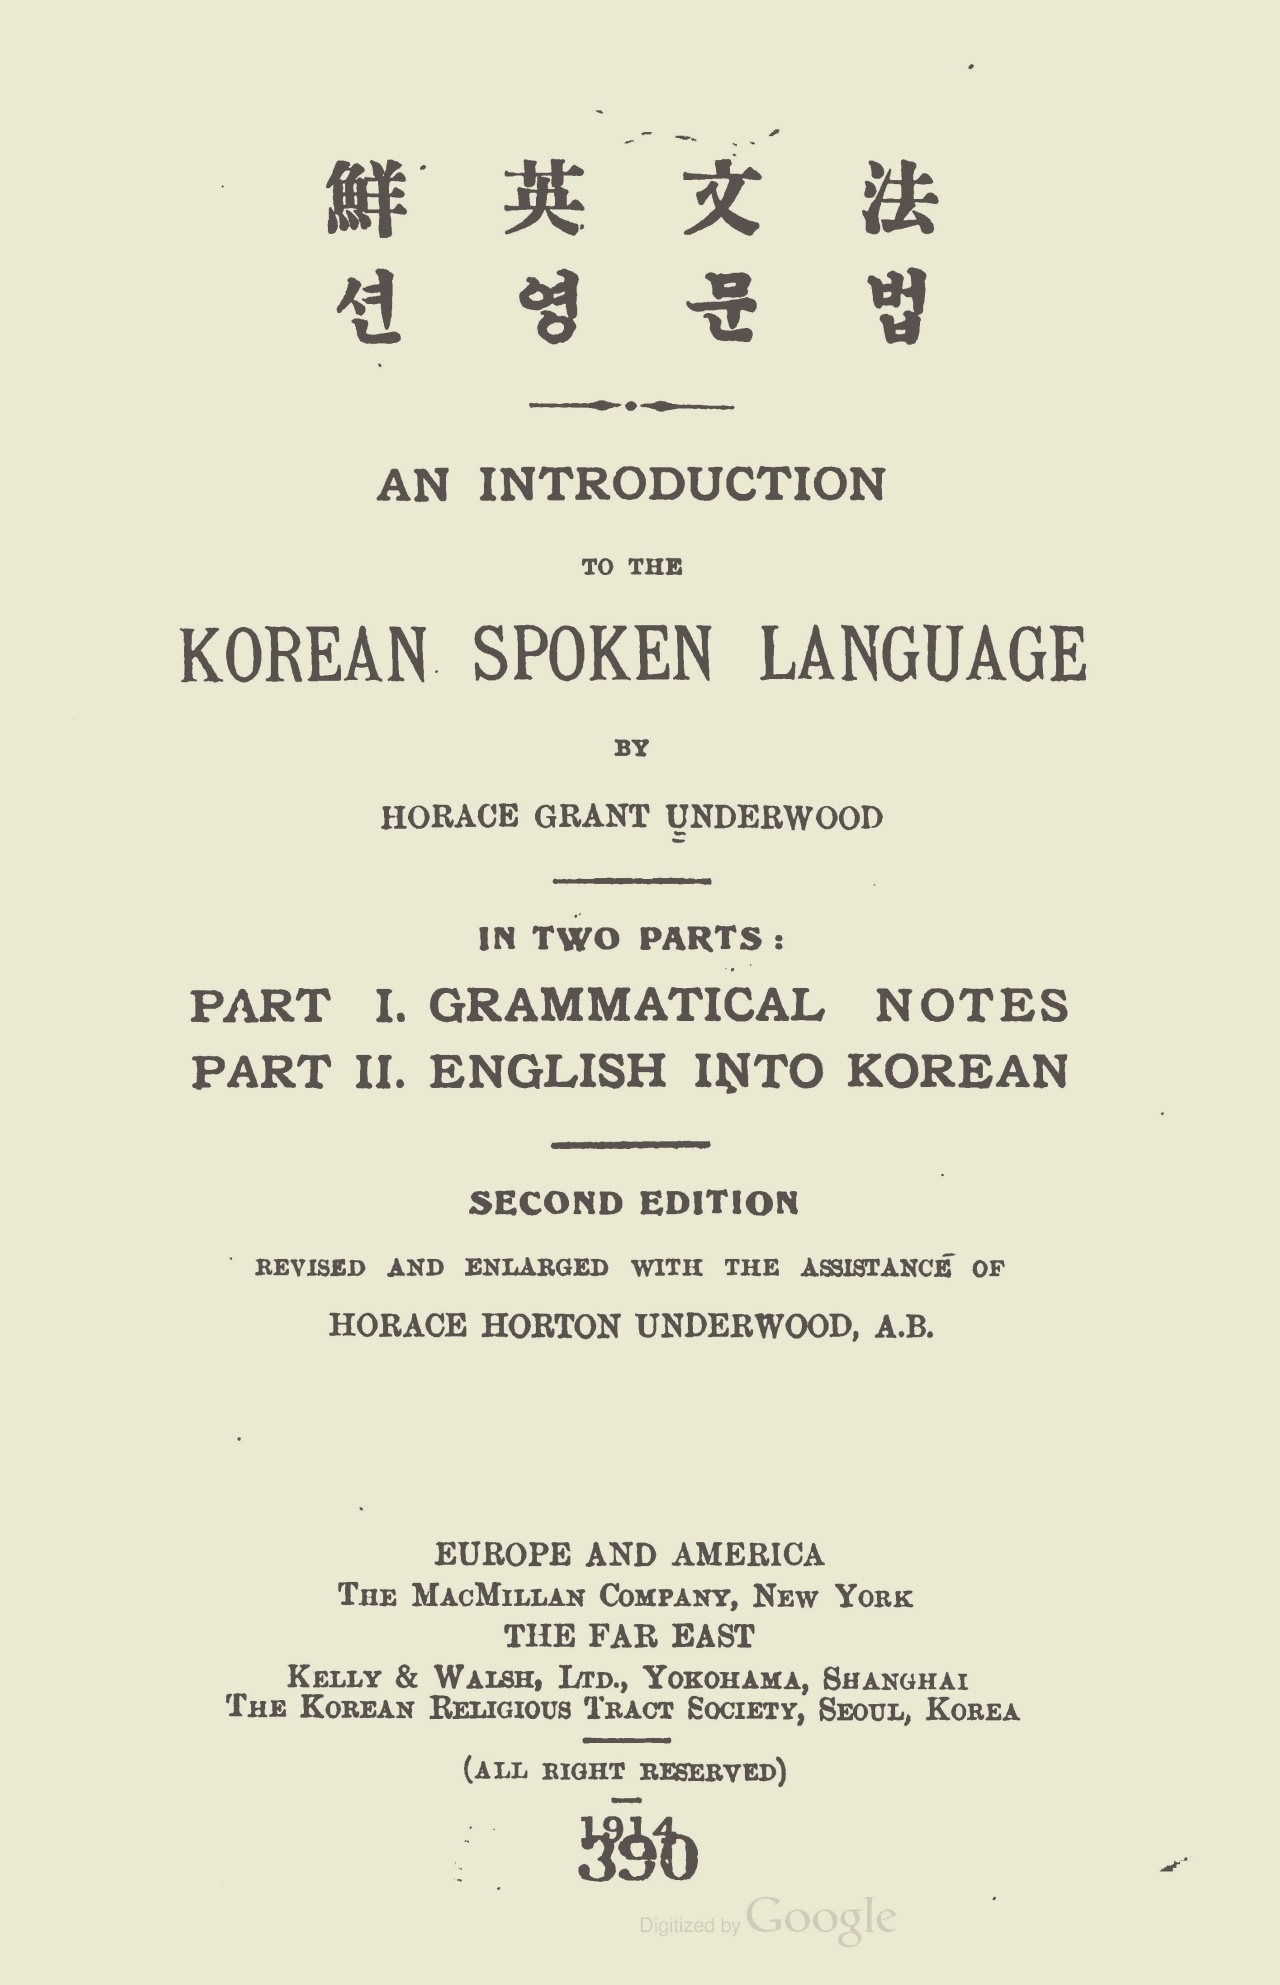 Underwood, Horace Grant, An Introduction to the Korean Spoken Language Title Page.jpg